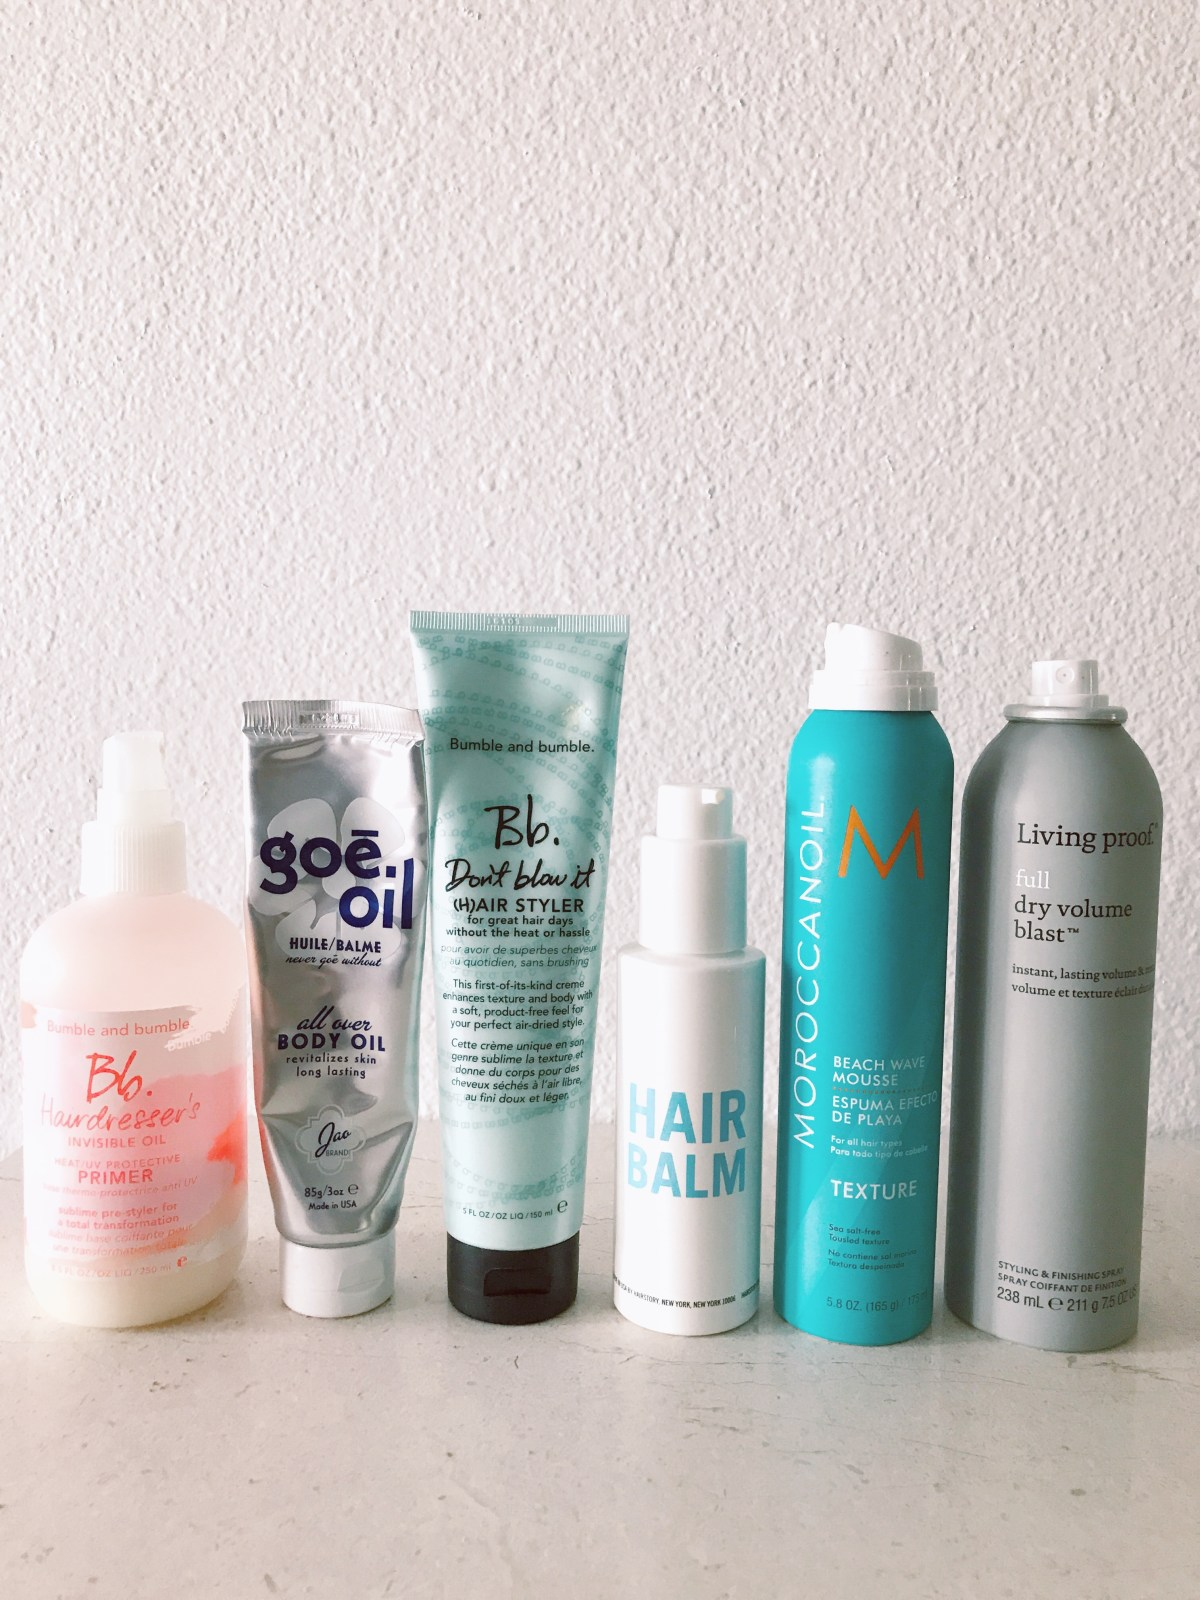 Best Products For Air Drying Hair: Bumble and Bumble Hairdresser's Invisible Oil & Don't Blow It Air Styler, Hair Balm, Moroccanoil Beach Wave Mousse, Living Proof Full Volume Blast